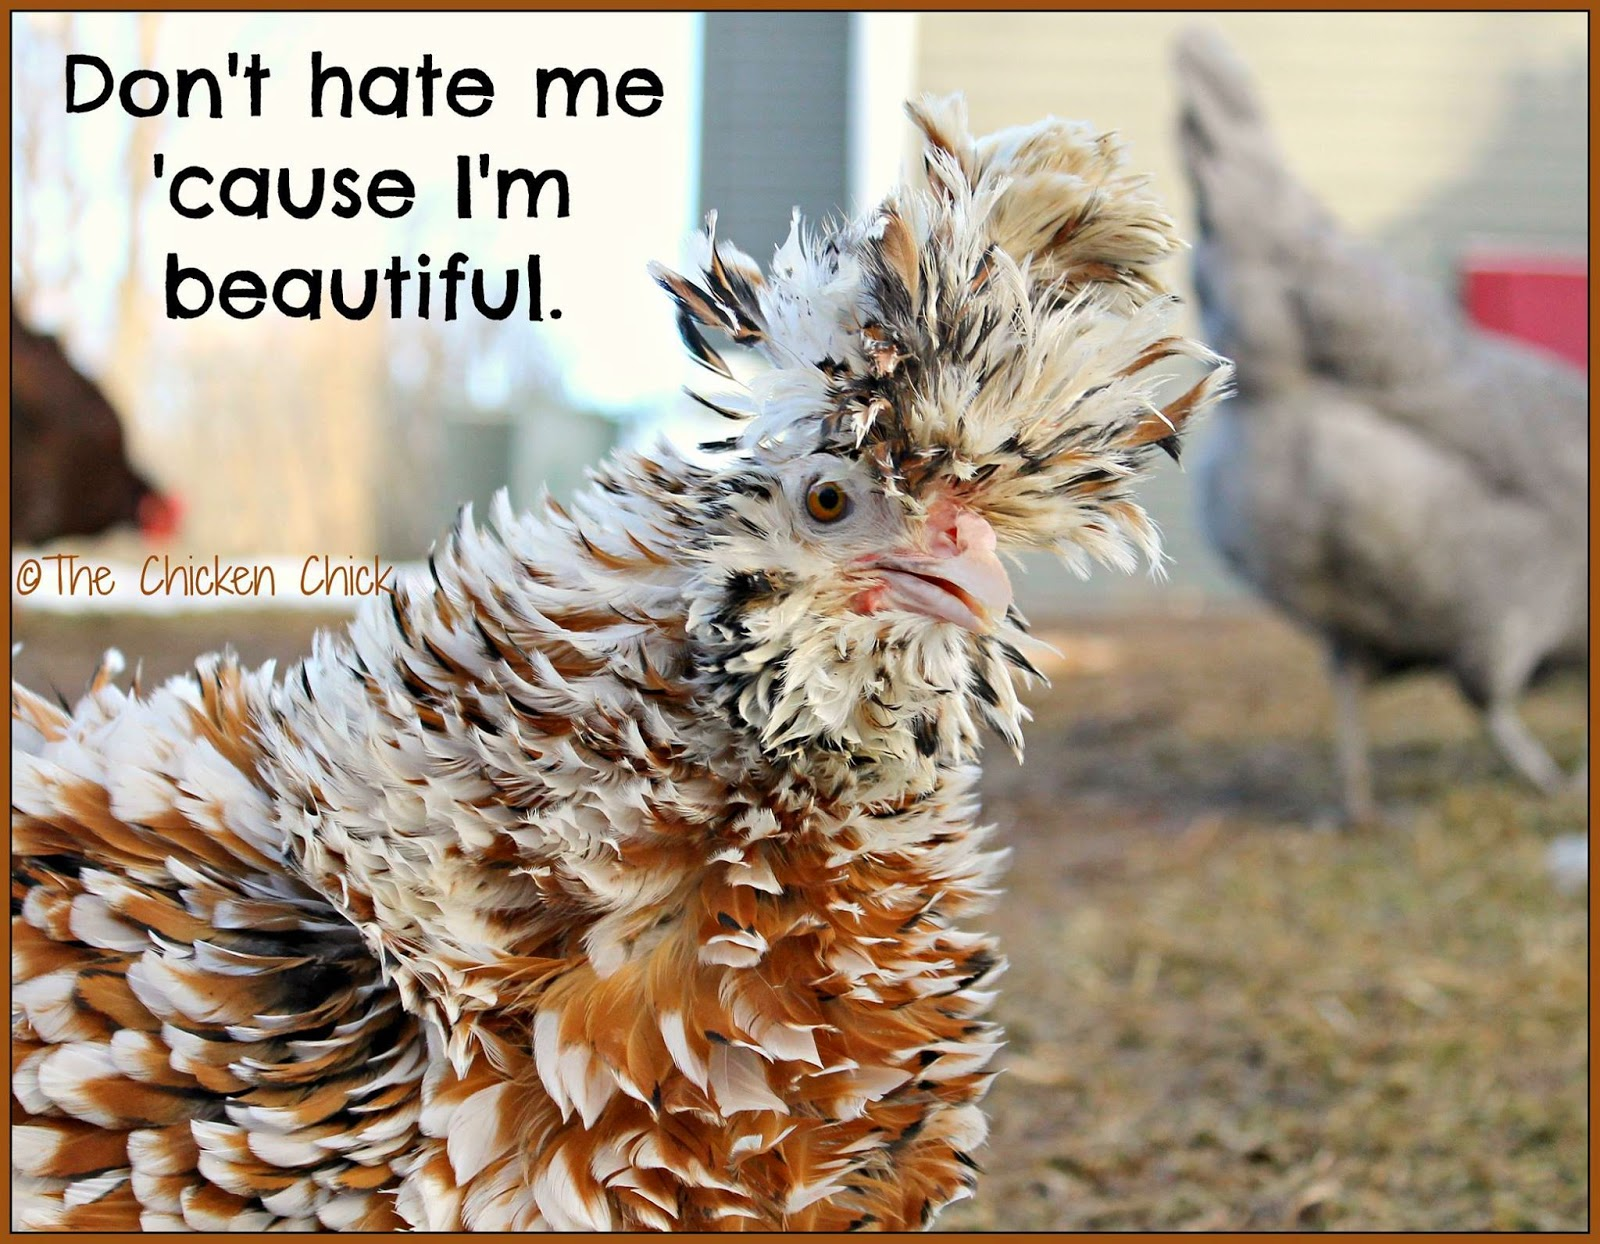 Don't hate me 'cause I'm beautiful.